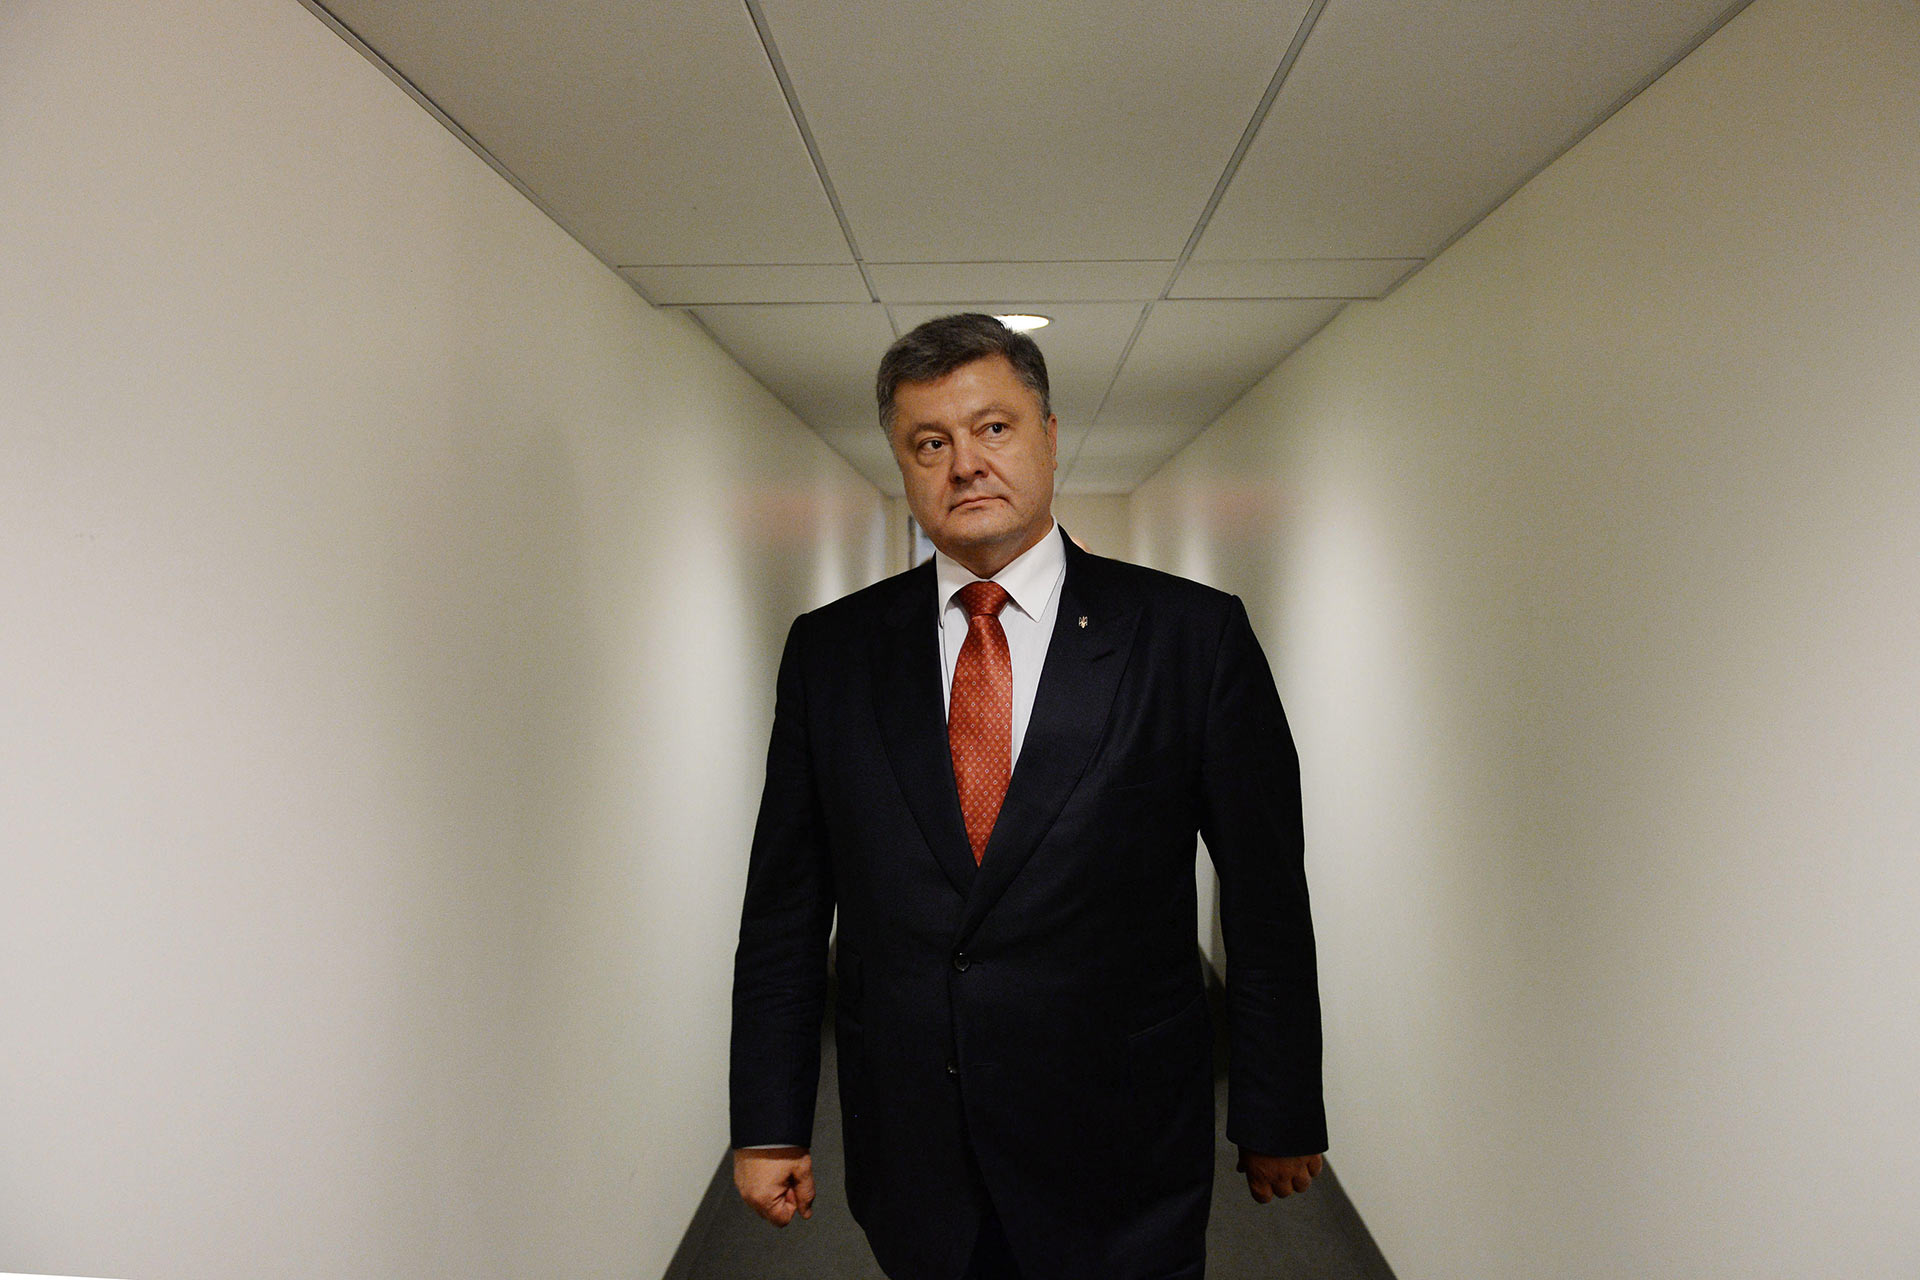 Former Ukrainian President Poroshenko Secretly Controlled Offshore Firms that Banked at Austria's Raiffeisen